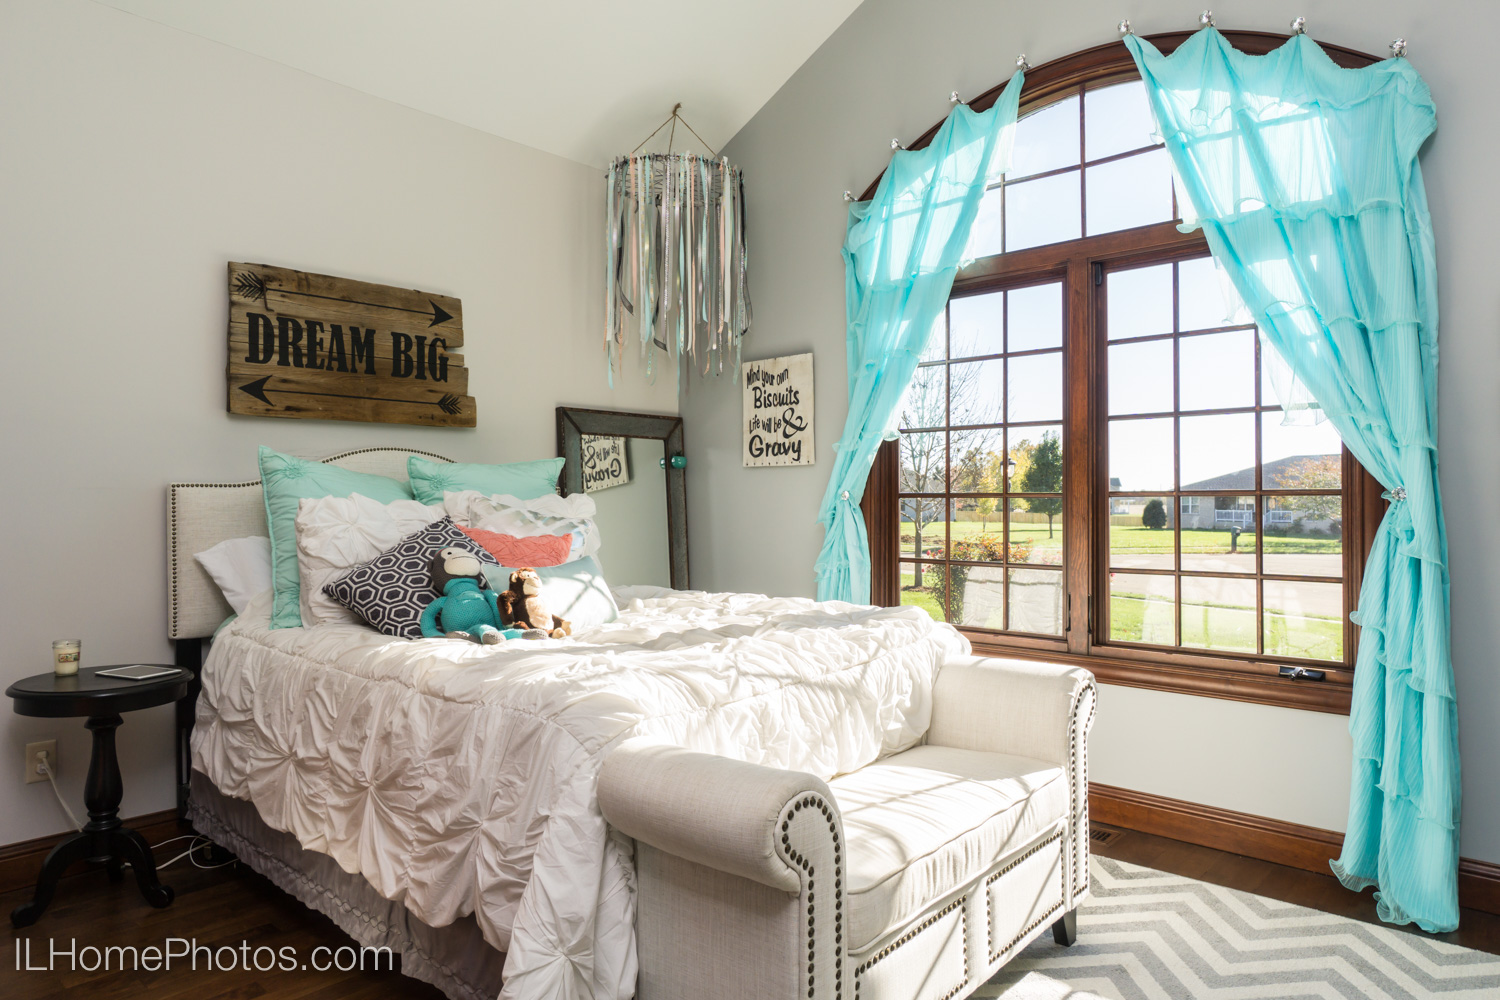 After - professional real estate photograph of child's bedroom